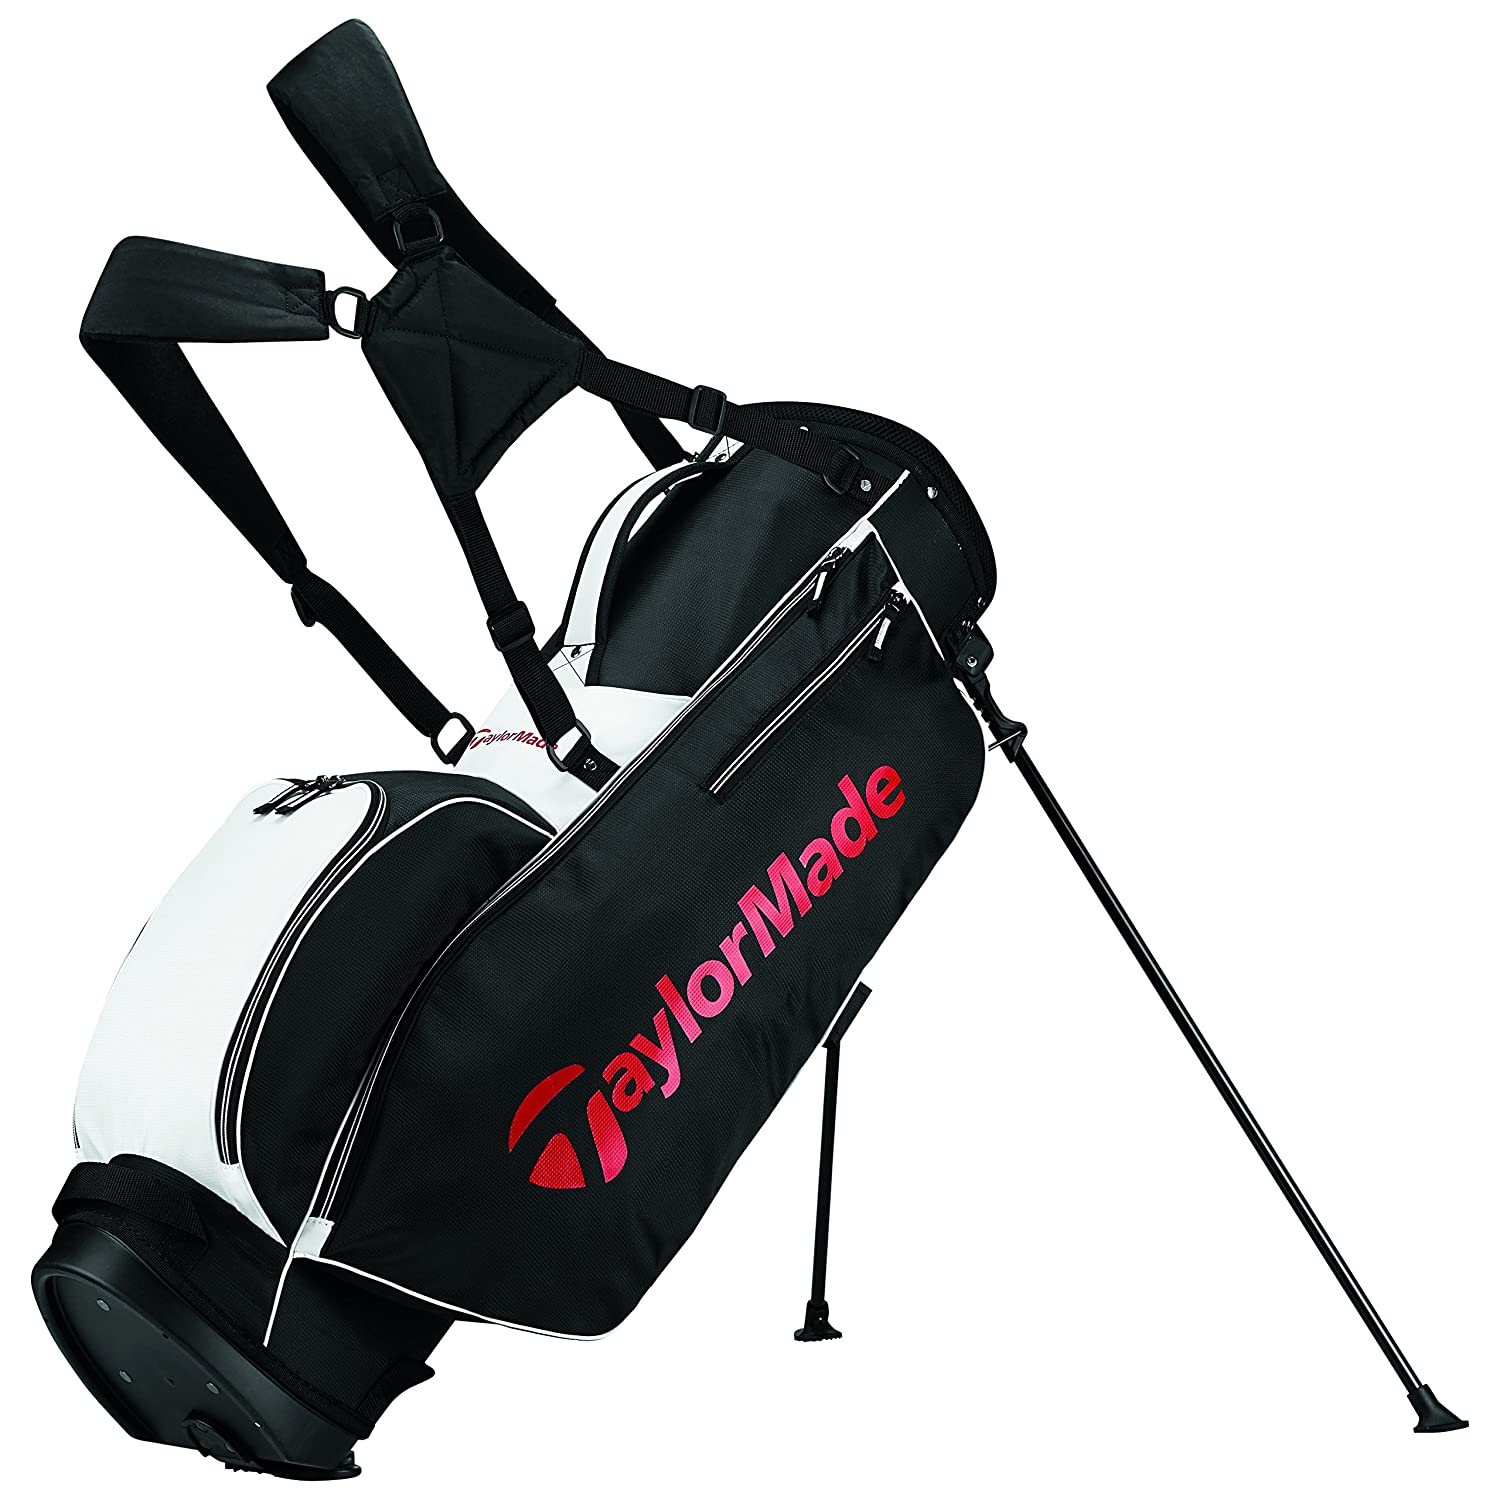 【正規販売店】 テーラーメイドゴルフ2017 Golf tmスタンドゴルフバッグ5.0TaylorMade Golf 2017 TM Stand Stand Golf Bag Black/White/Red 5.0並行輸入品 B01NCSNGRO Black/White/Red Black/White/Red, 作東町:905eb78f --- cursos.paulsotomayor.net